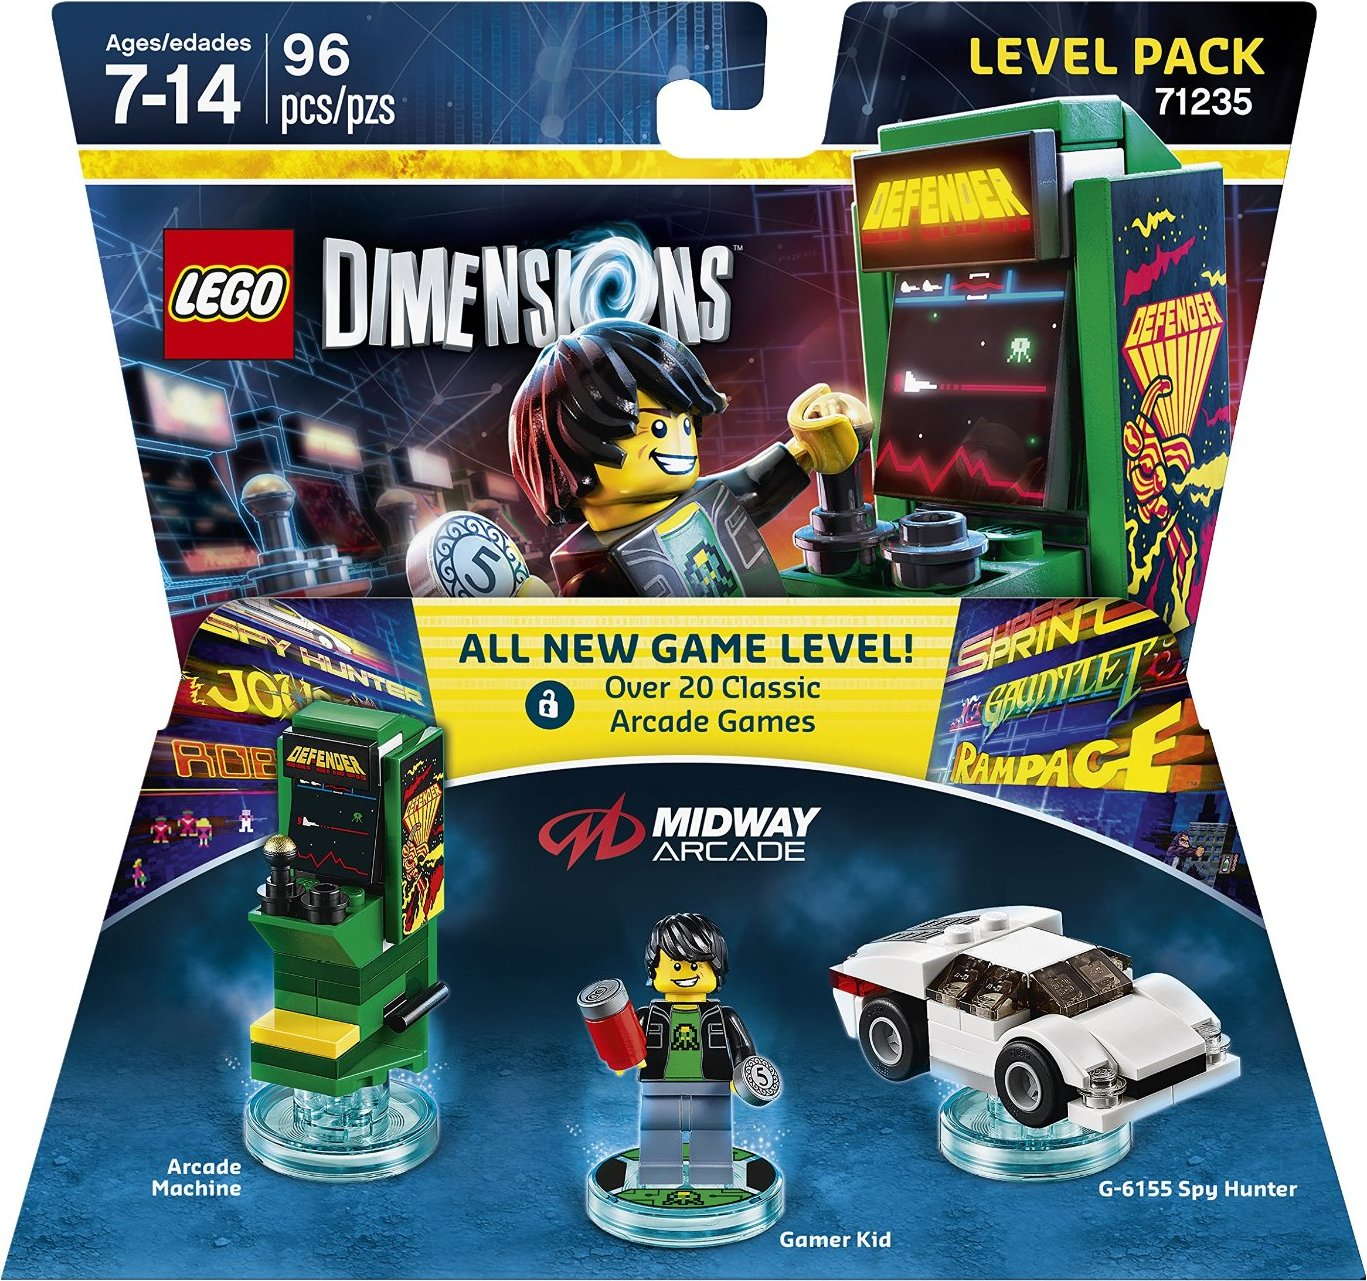 71235 Midway Arcade Level Pack